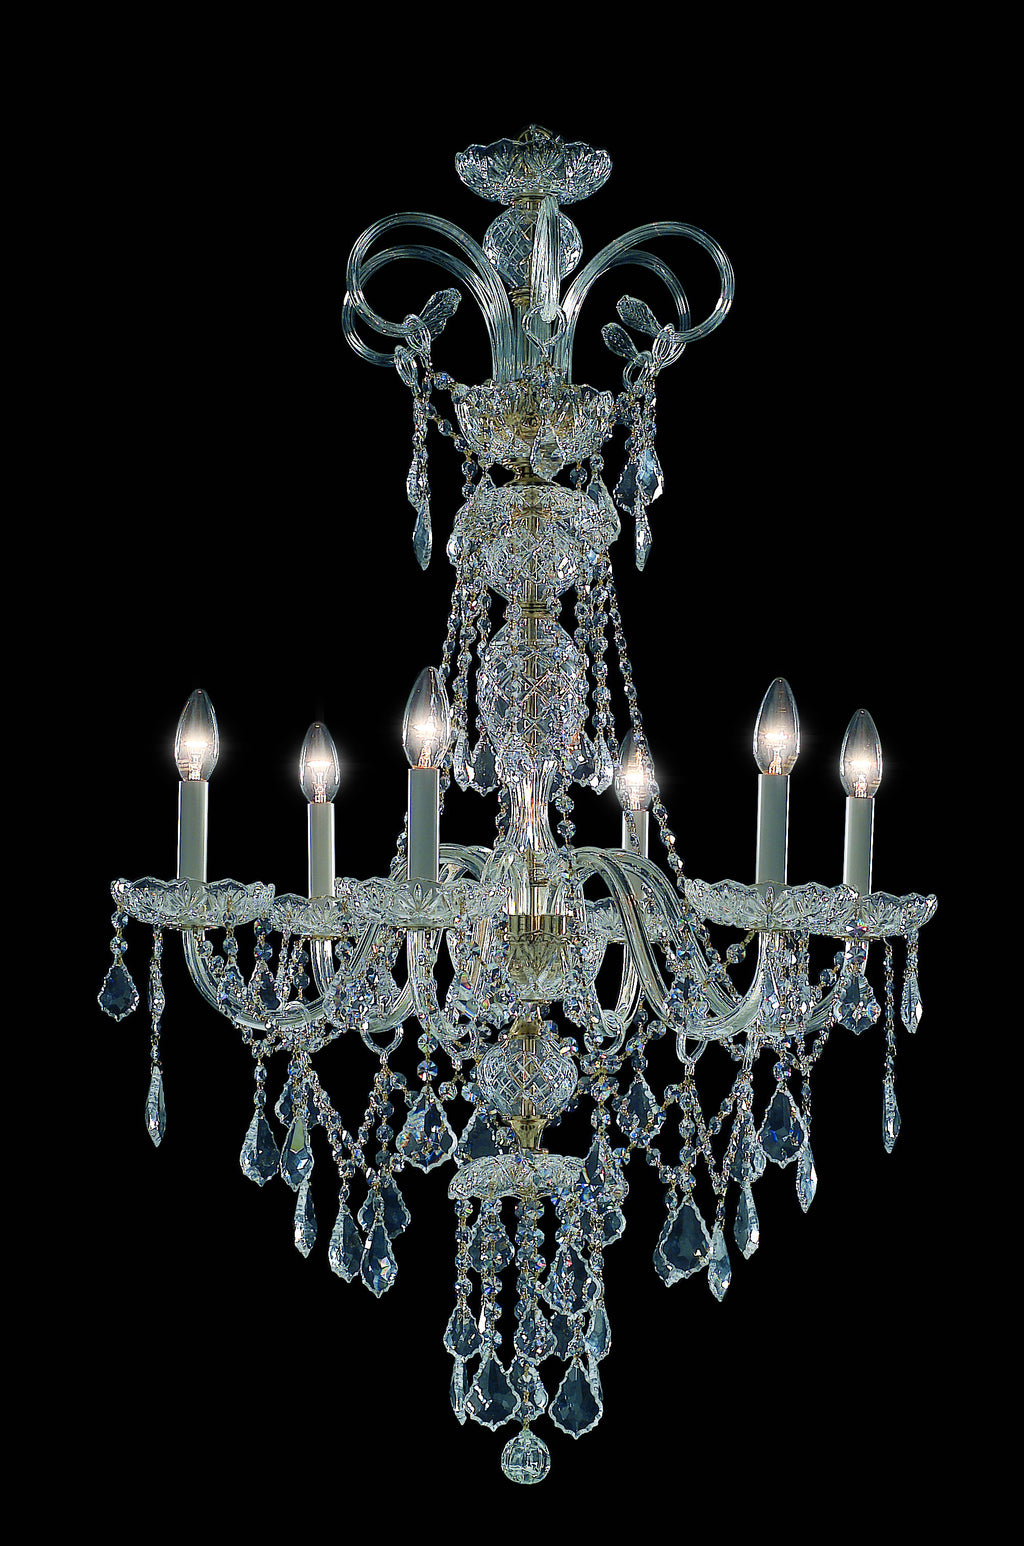 Richmond Chandelier 6 Light - David Malik & Son